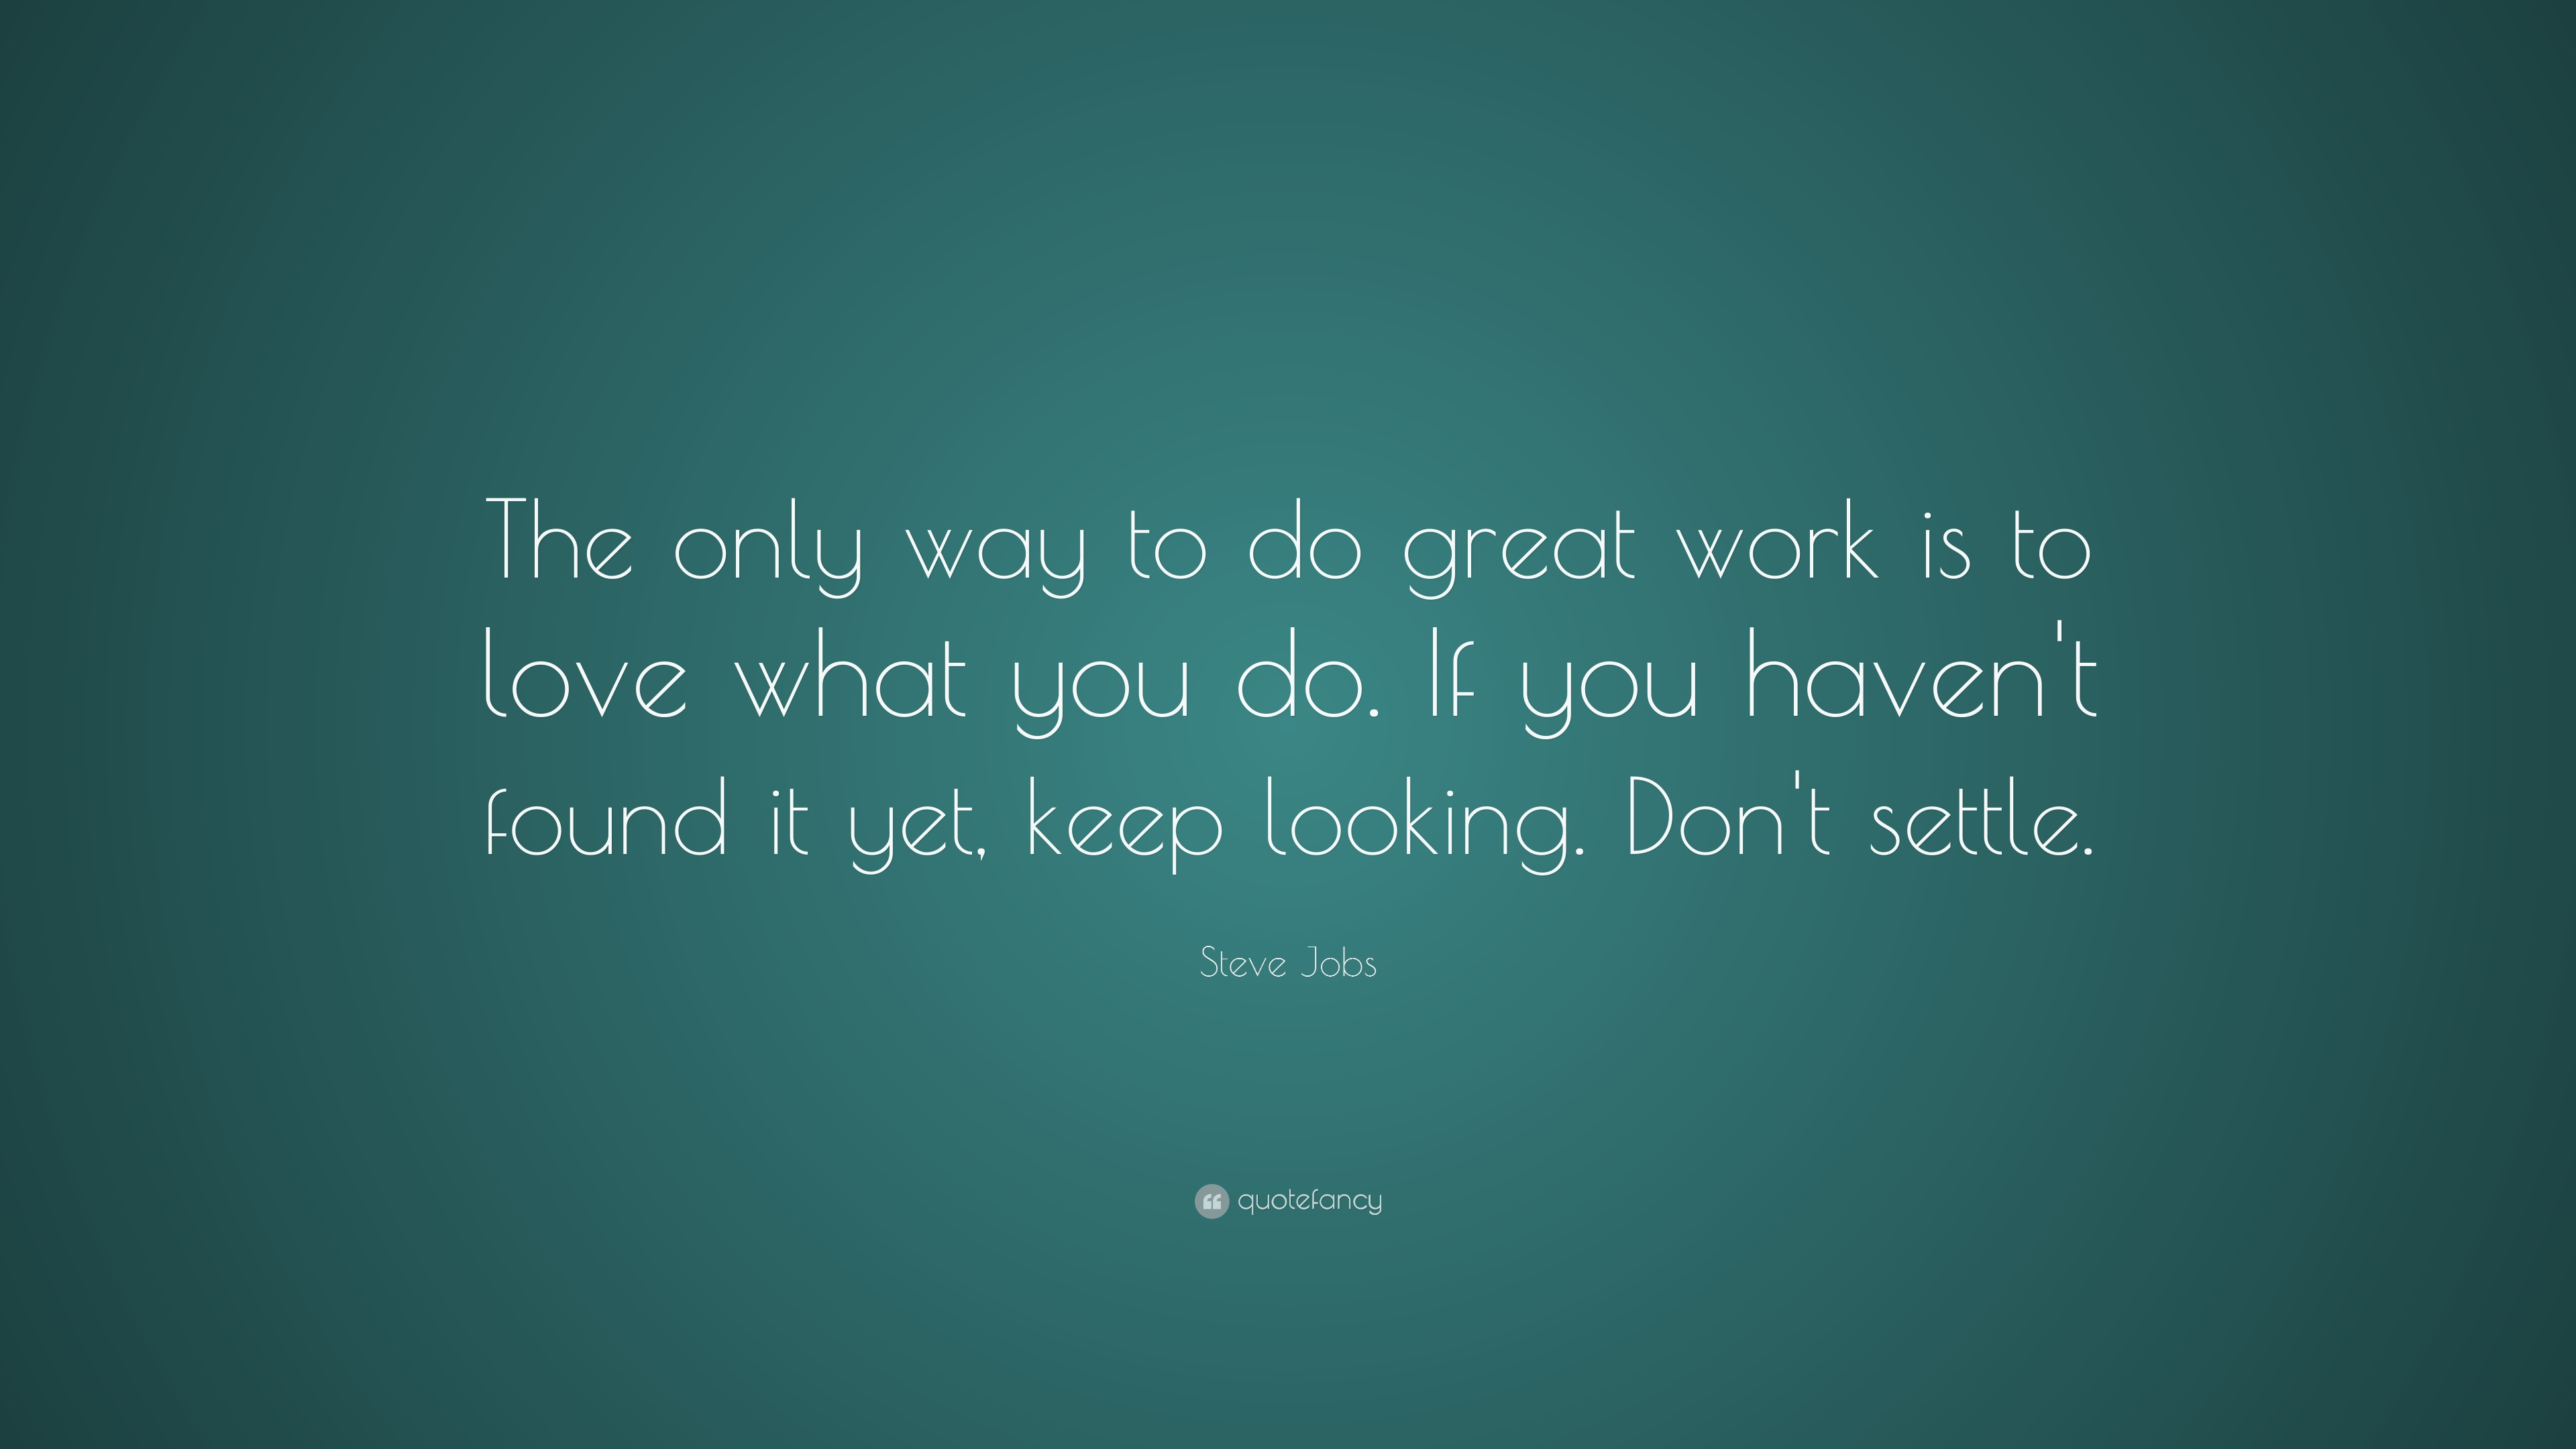 Innovative Quotes Wallpapers Steve Jobs Quote The Only Way To Do Great Work Is To